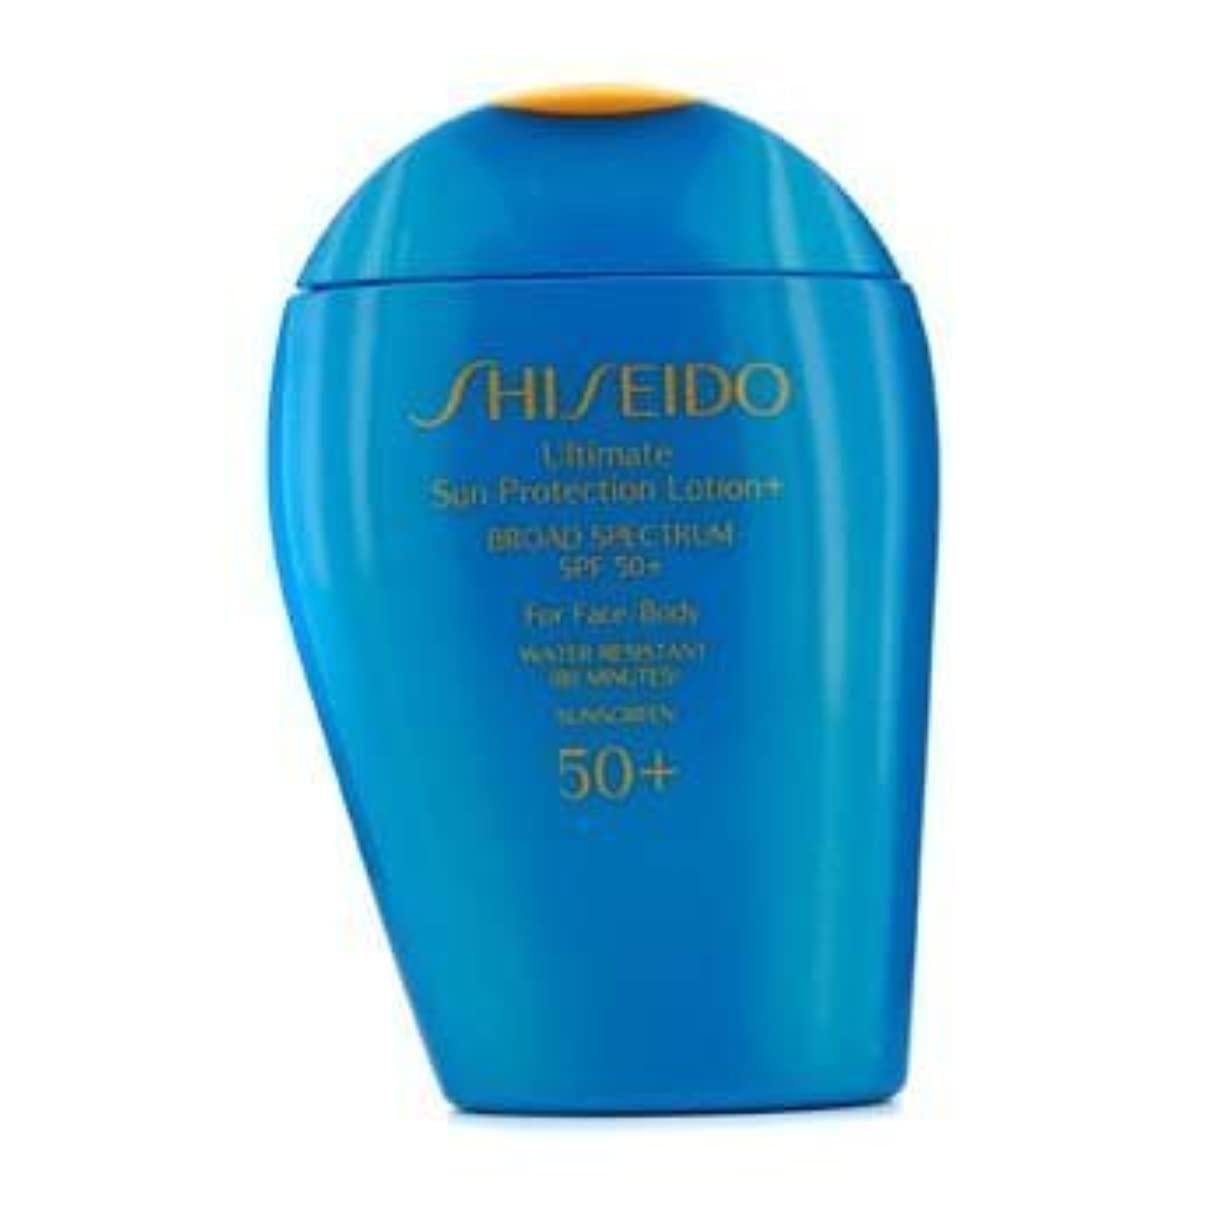 興奮する子供達ホールドオールShiseido Ultimate Sun Protection Face & Body Lotion SPF 50+ - 100ml/3.3oz by Shiseido [並行輸入品]